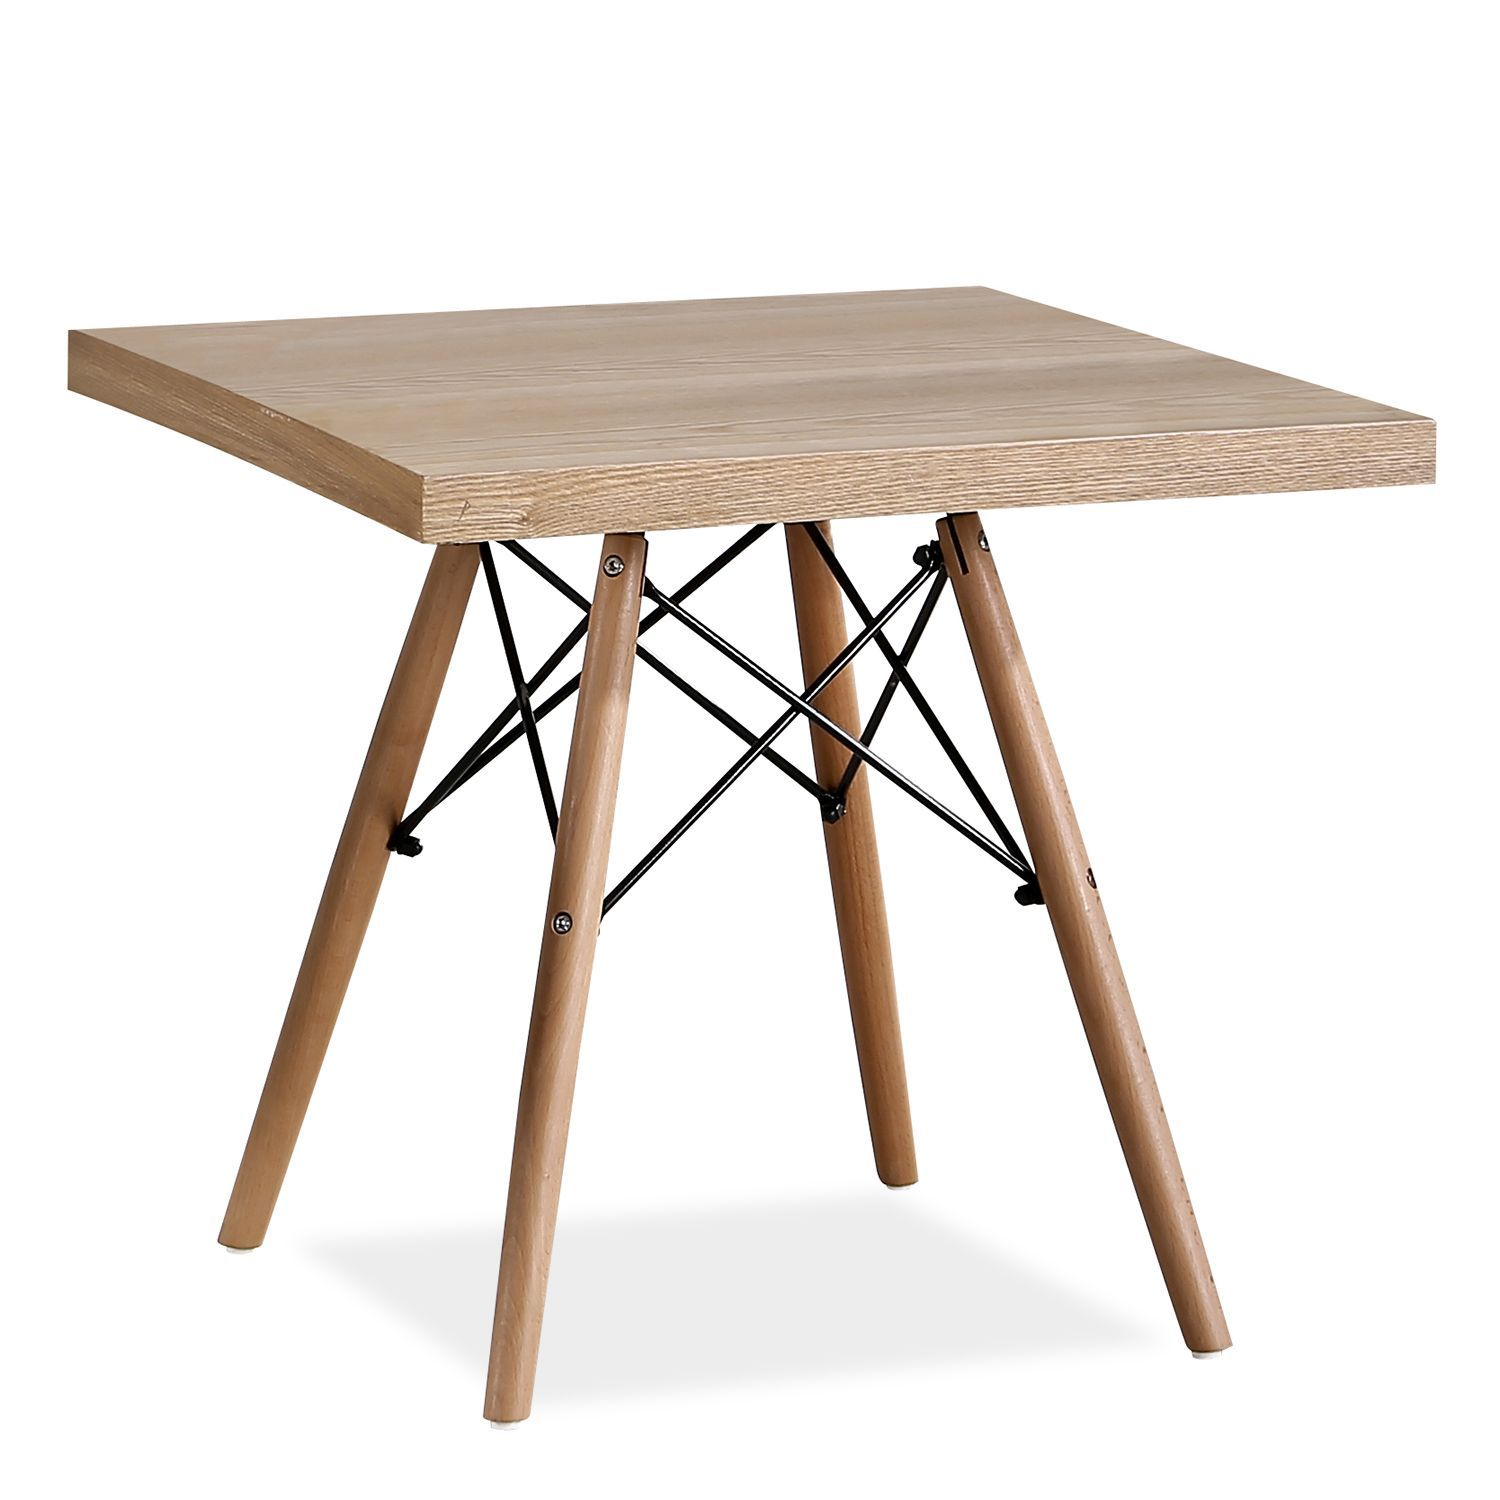 Eames Square Universal Table Task Chair Design Square Tables